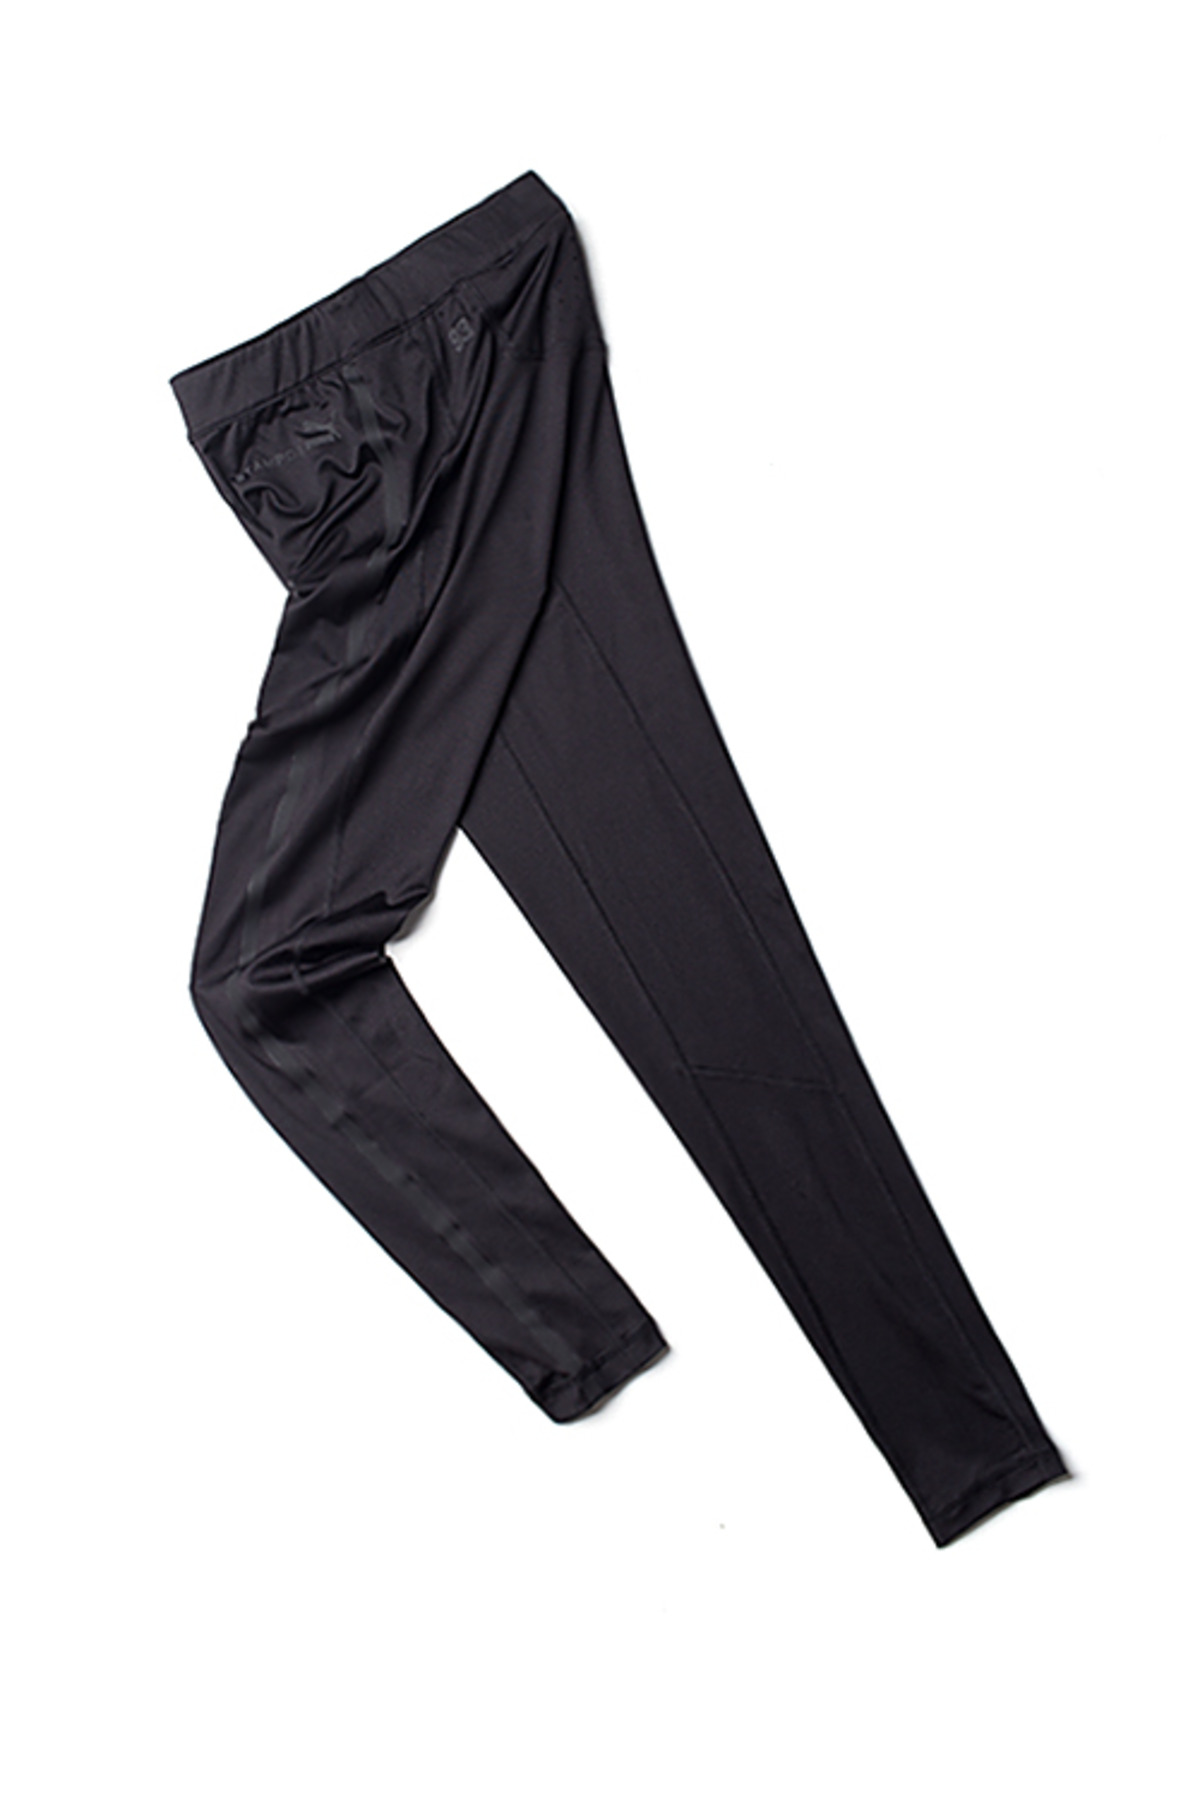 Puma x STAMPD : Techy Leggings (Black)